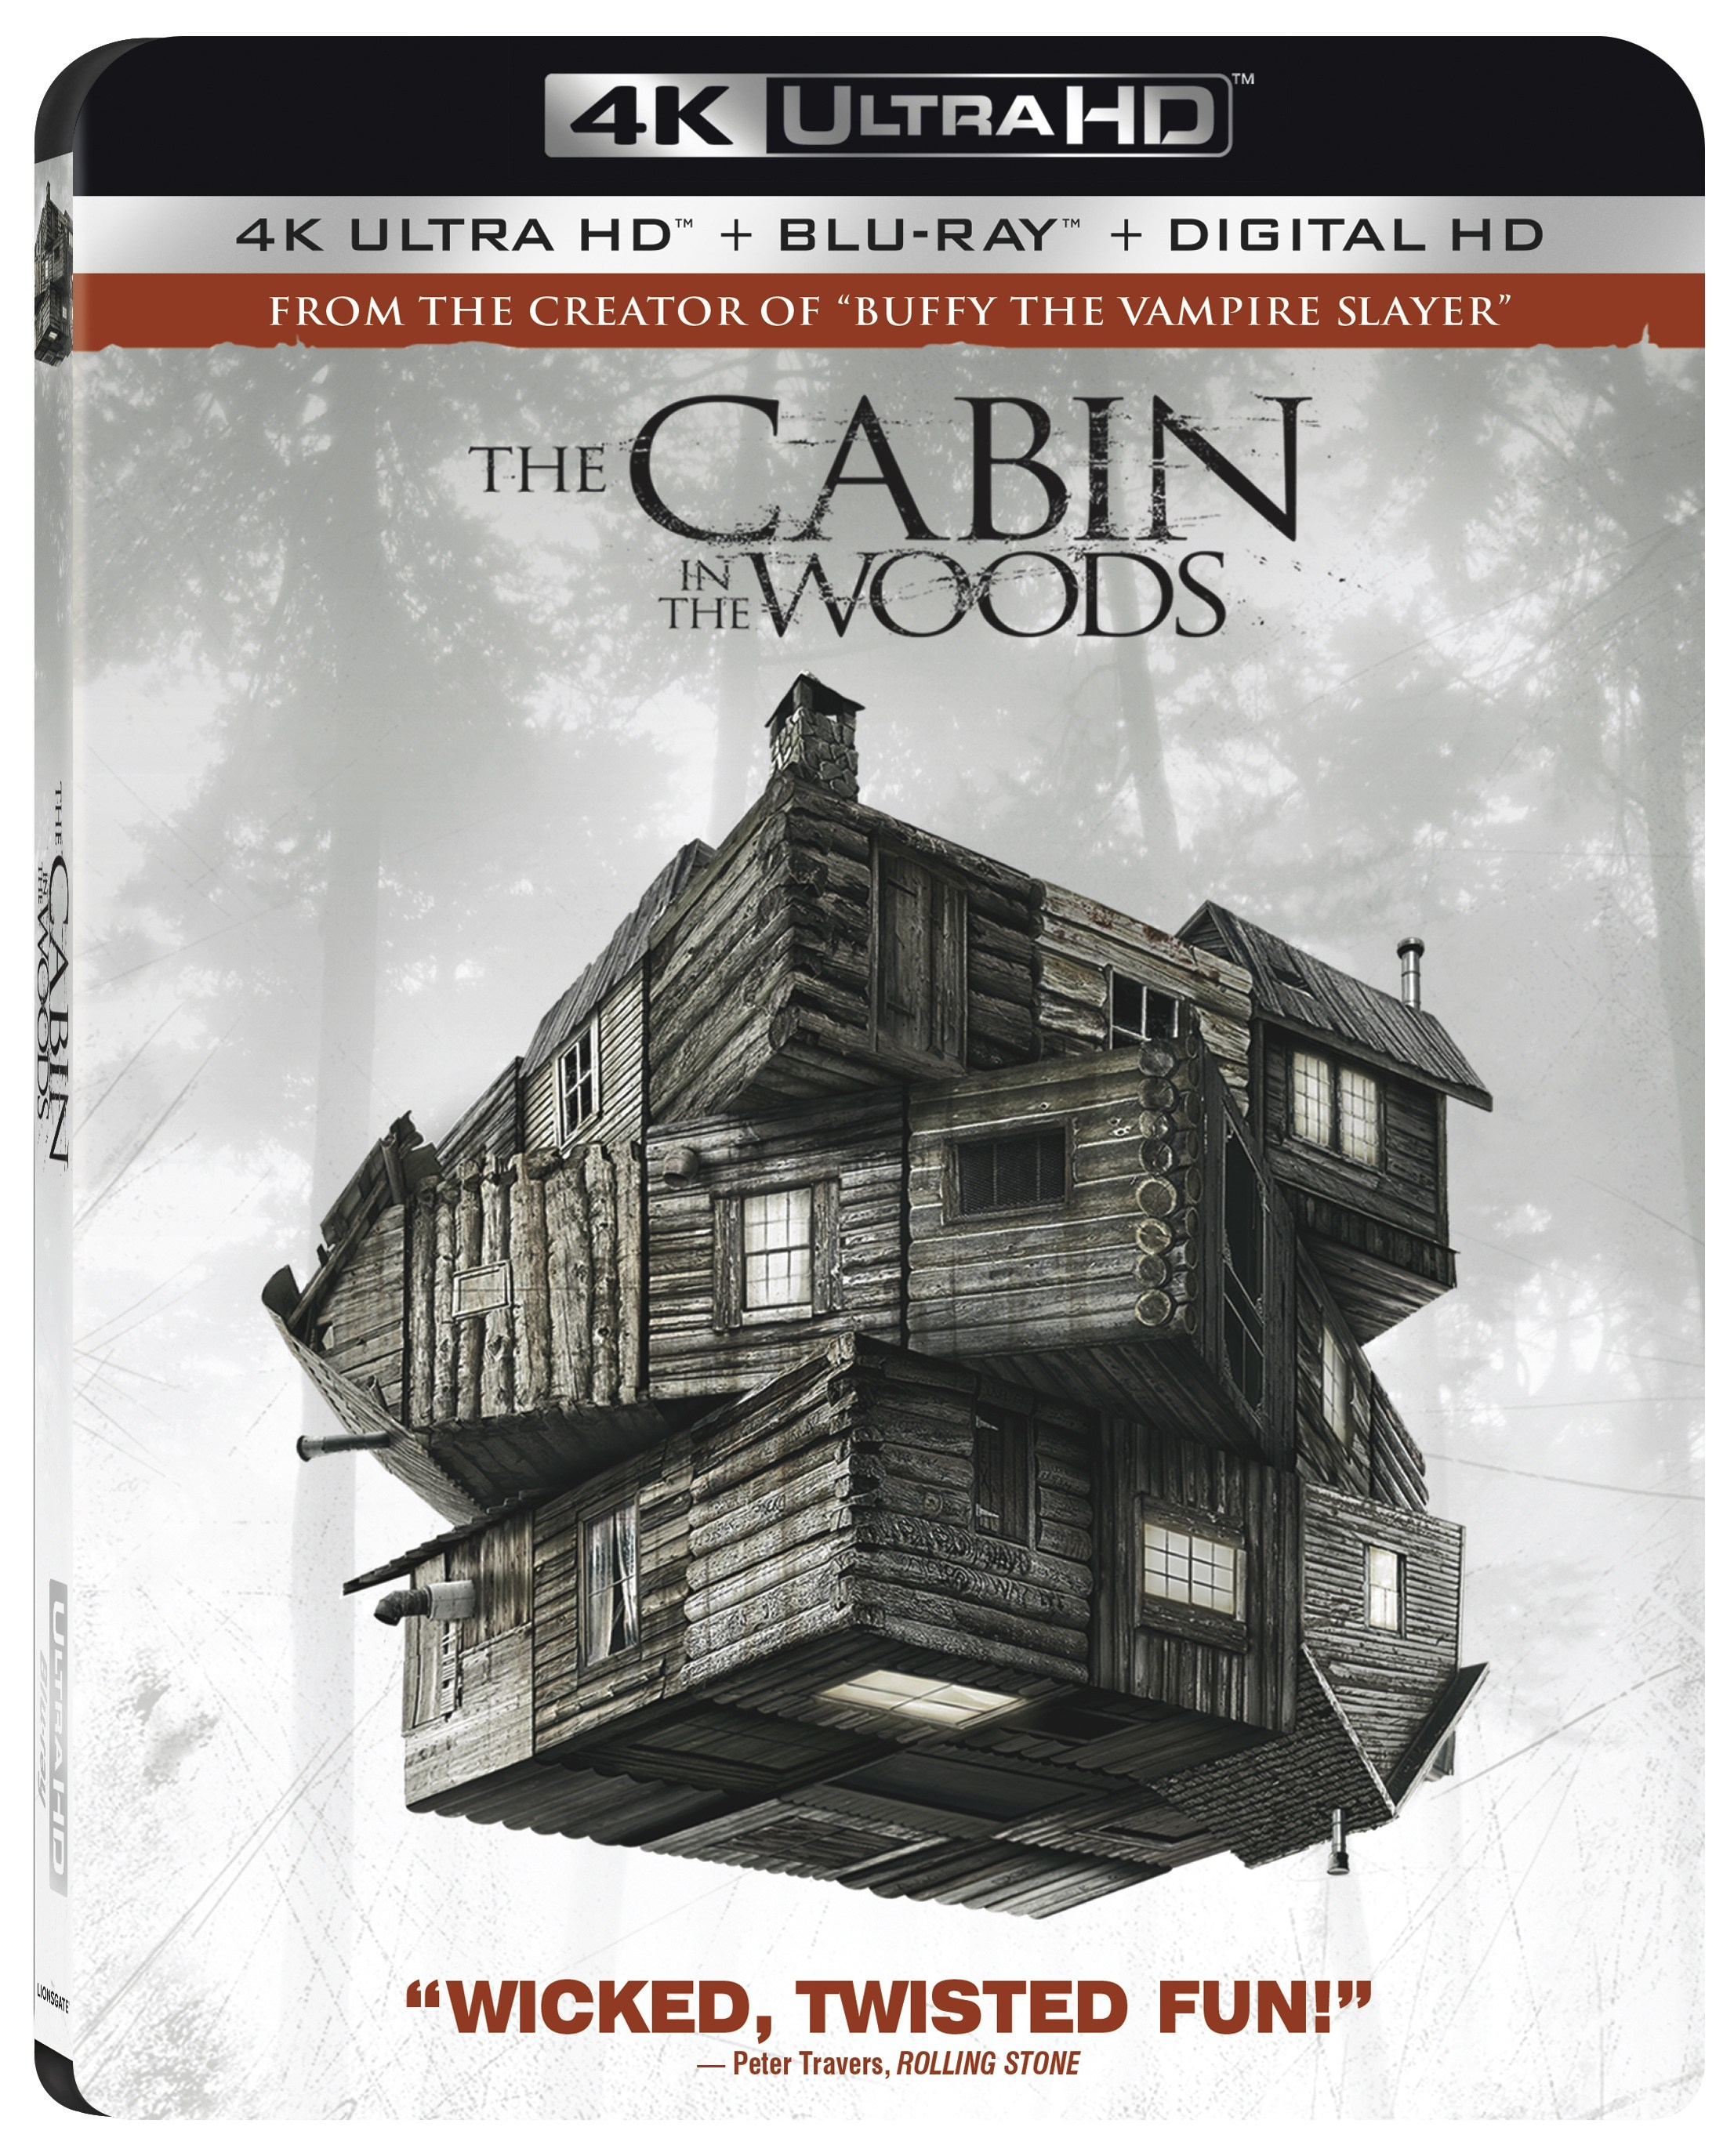 cabin in the woods 4k - The Cabin in the Woods Open to New 4K Blu-ray